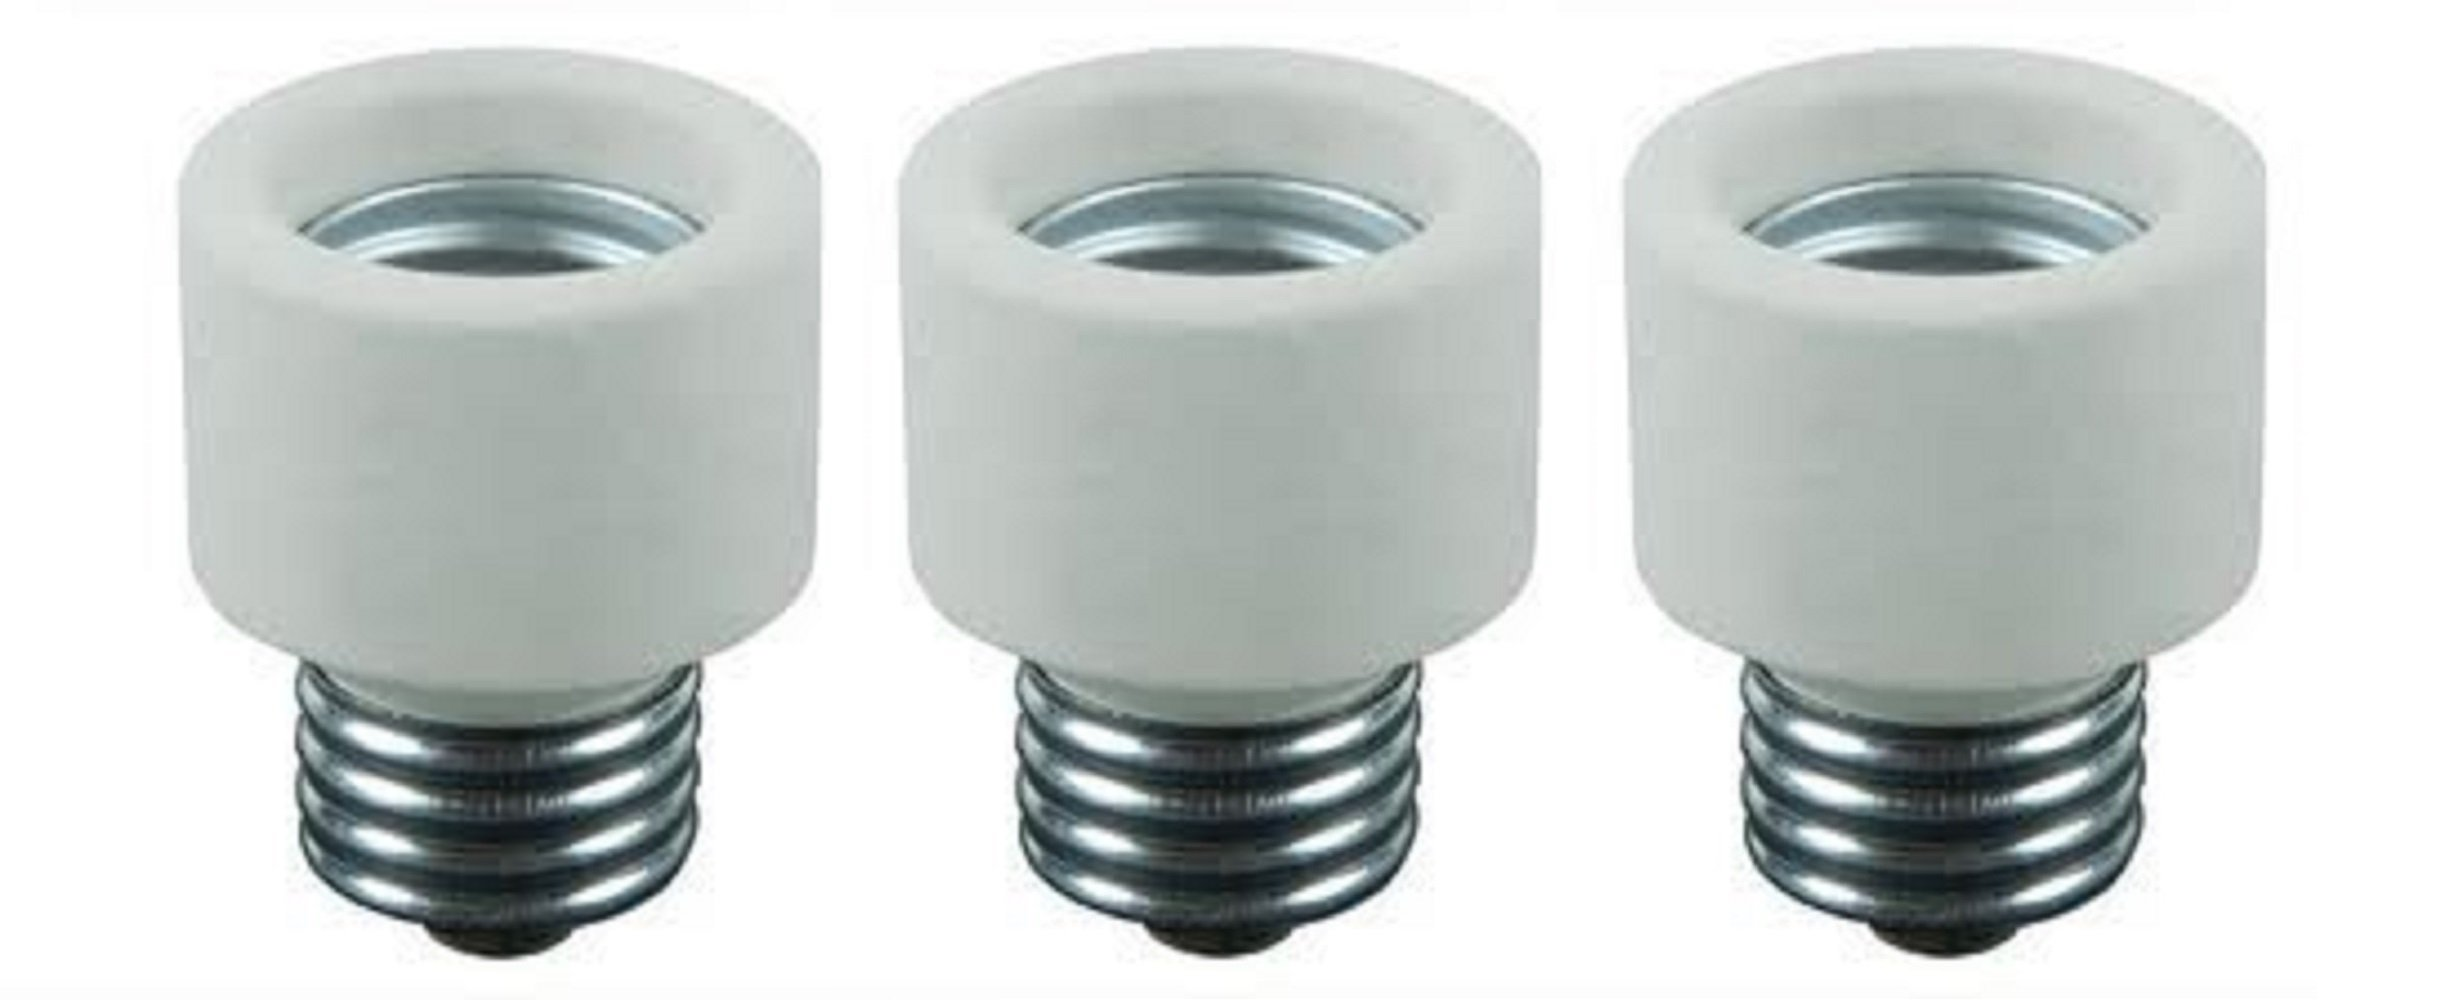 Pack Of 3 Medium Base To Medium Base Light Bulb Socket Porcelain Extender / E26 1 Inch Extension Adapter